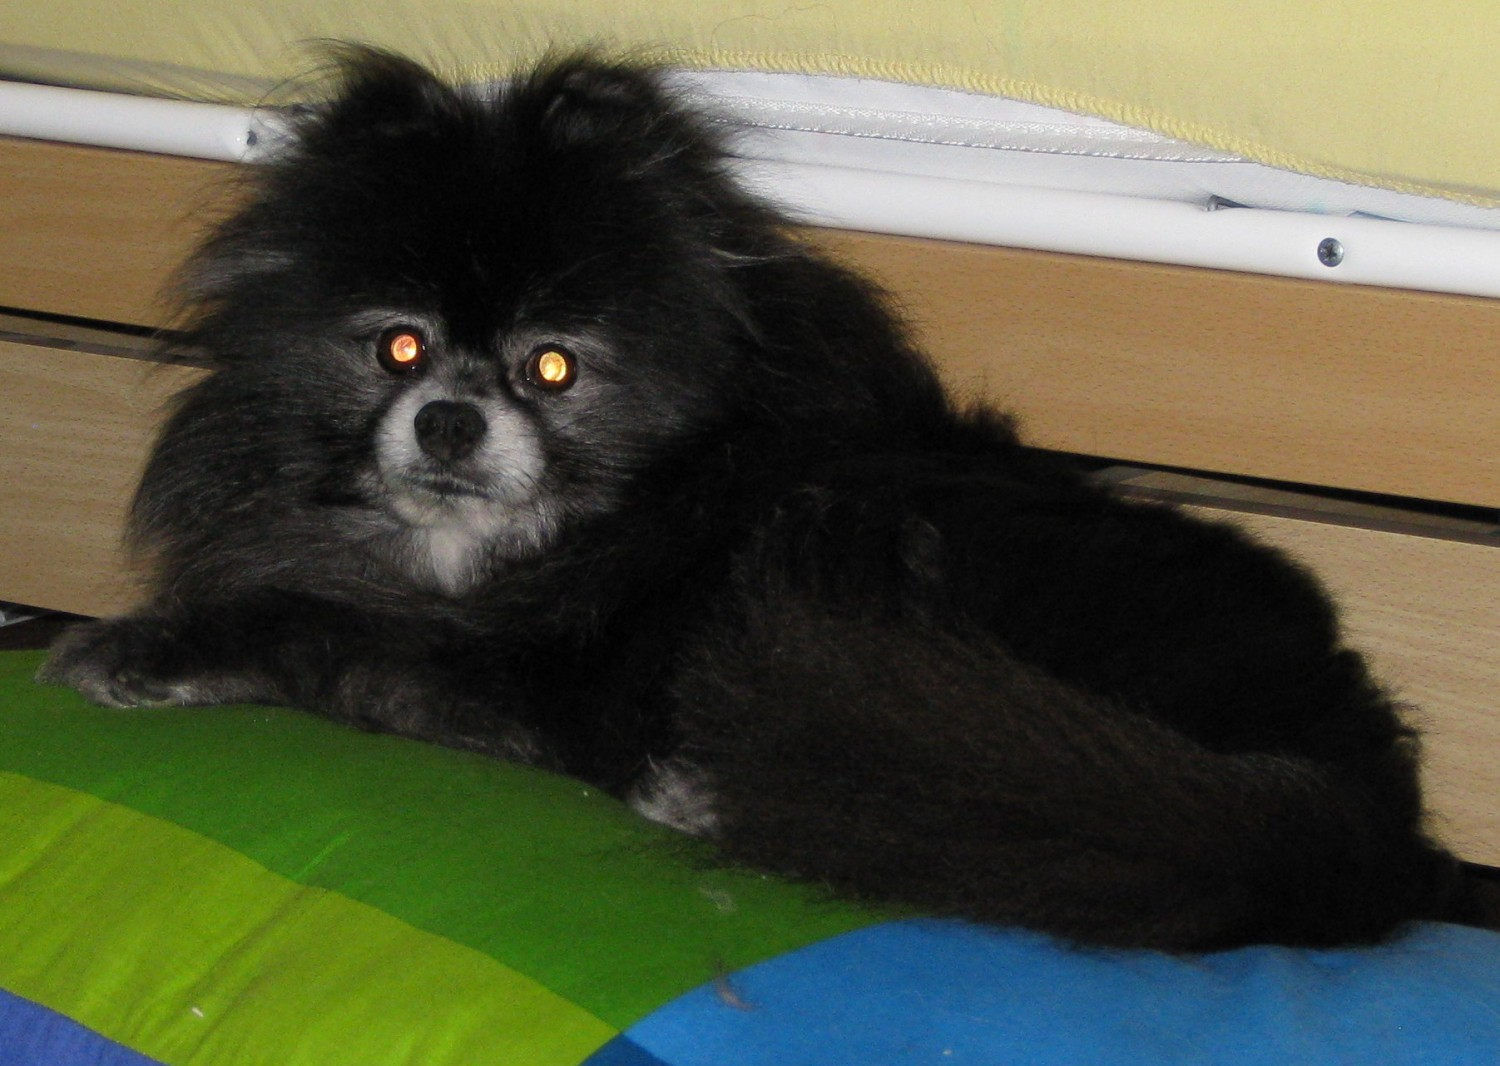 Crystal, Erika's Pomeranian, relaxing on a stolen pillow - Manchester Veterinary Clinic - CT